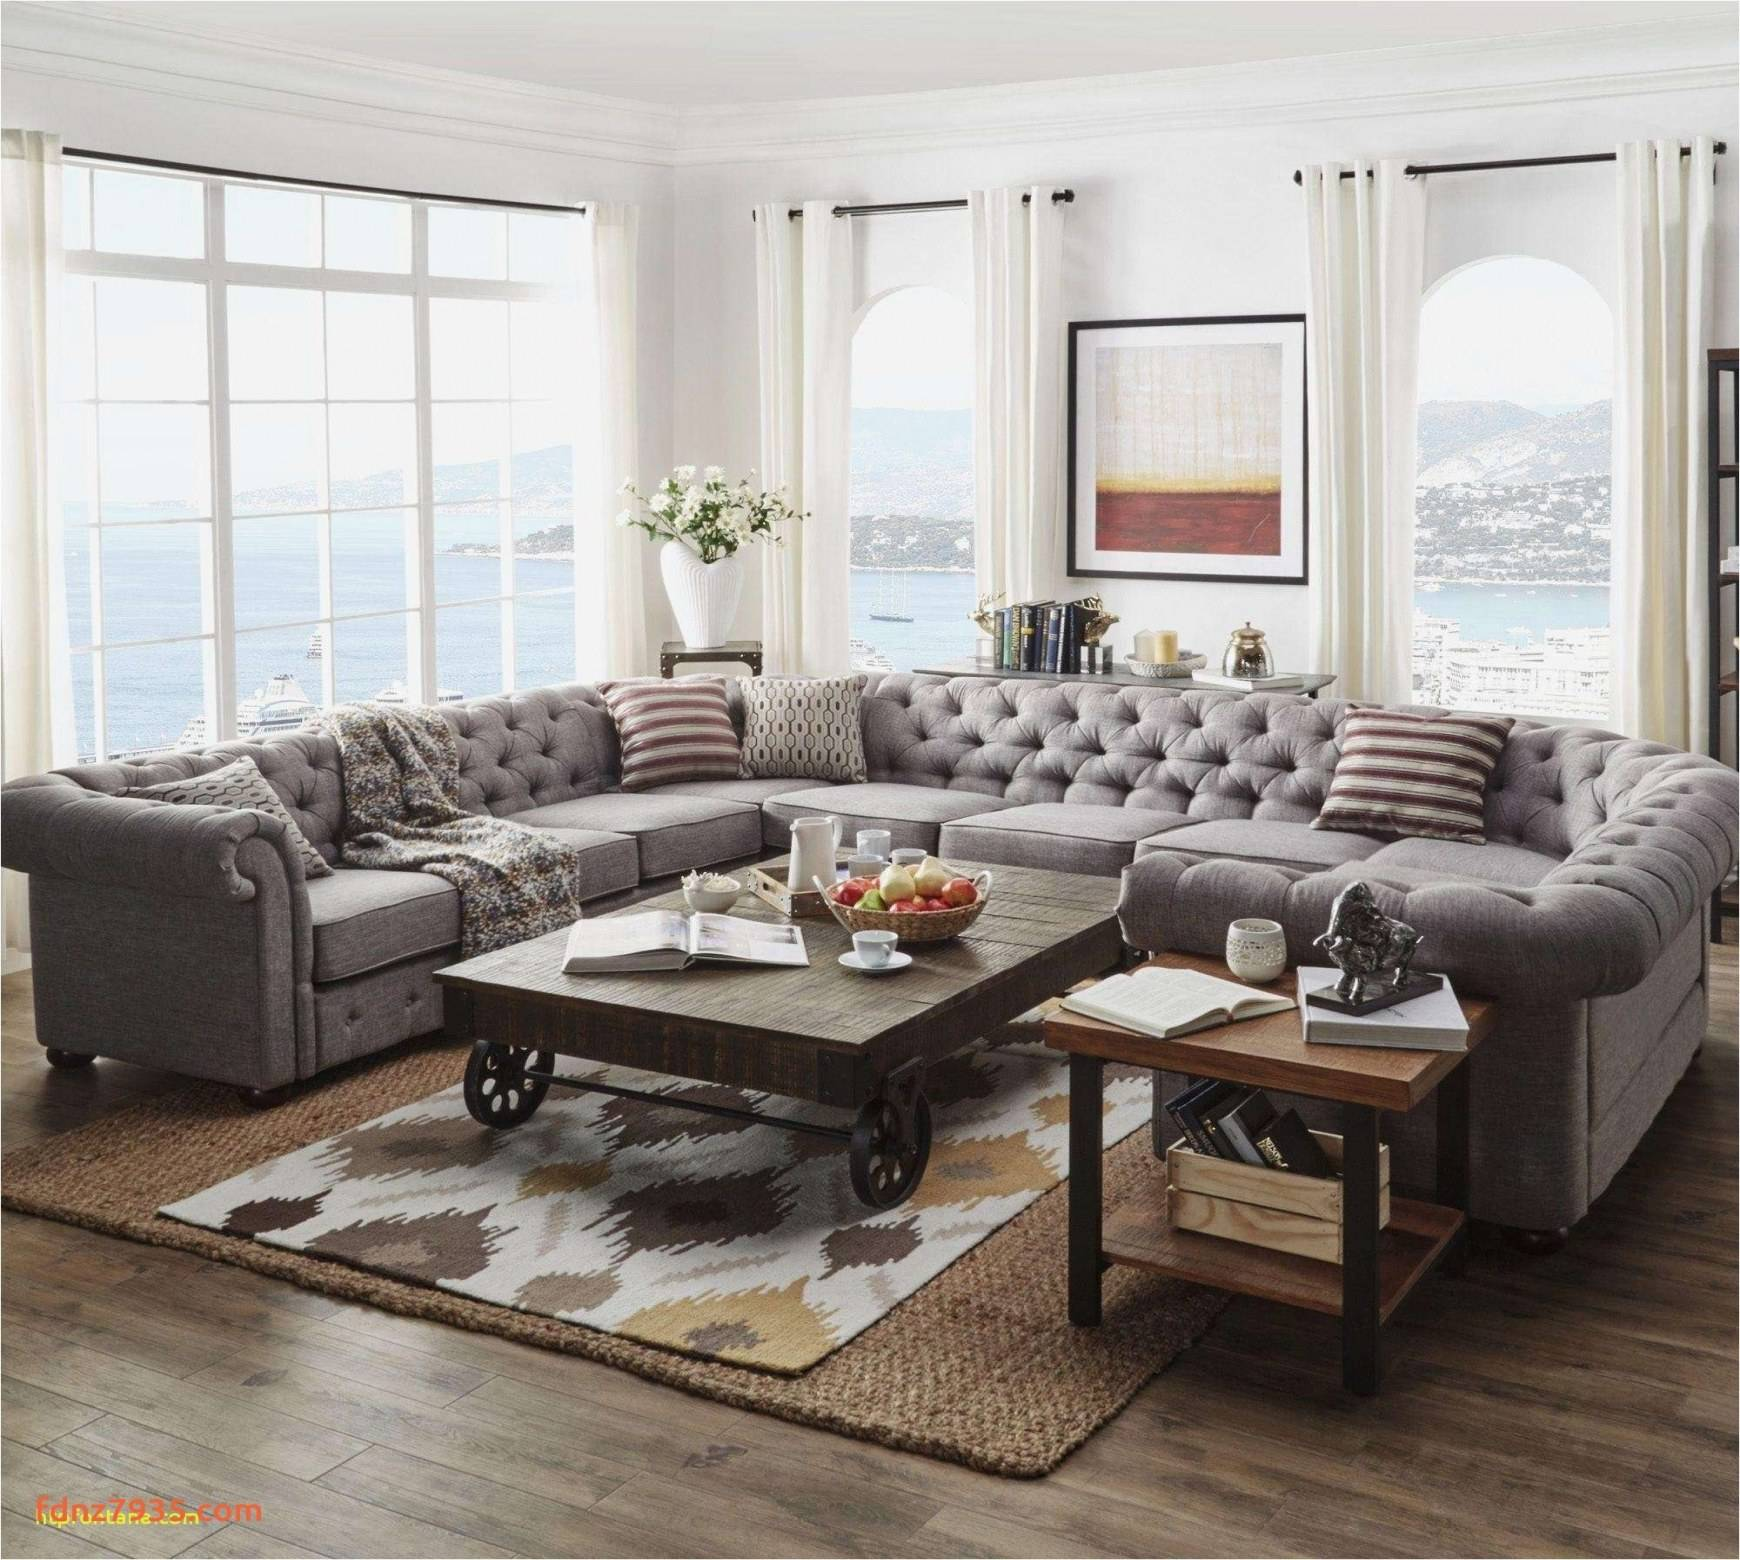 living room ideas sofas ideas living room fresh sofa design of living room ideas